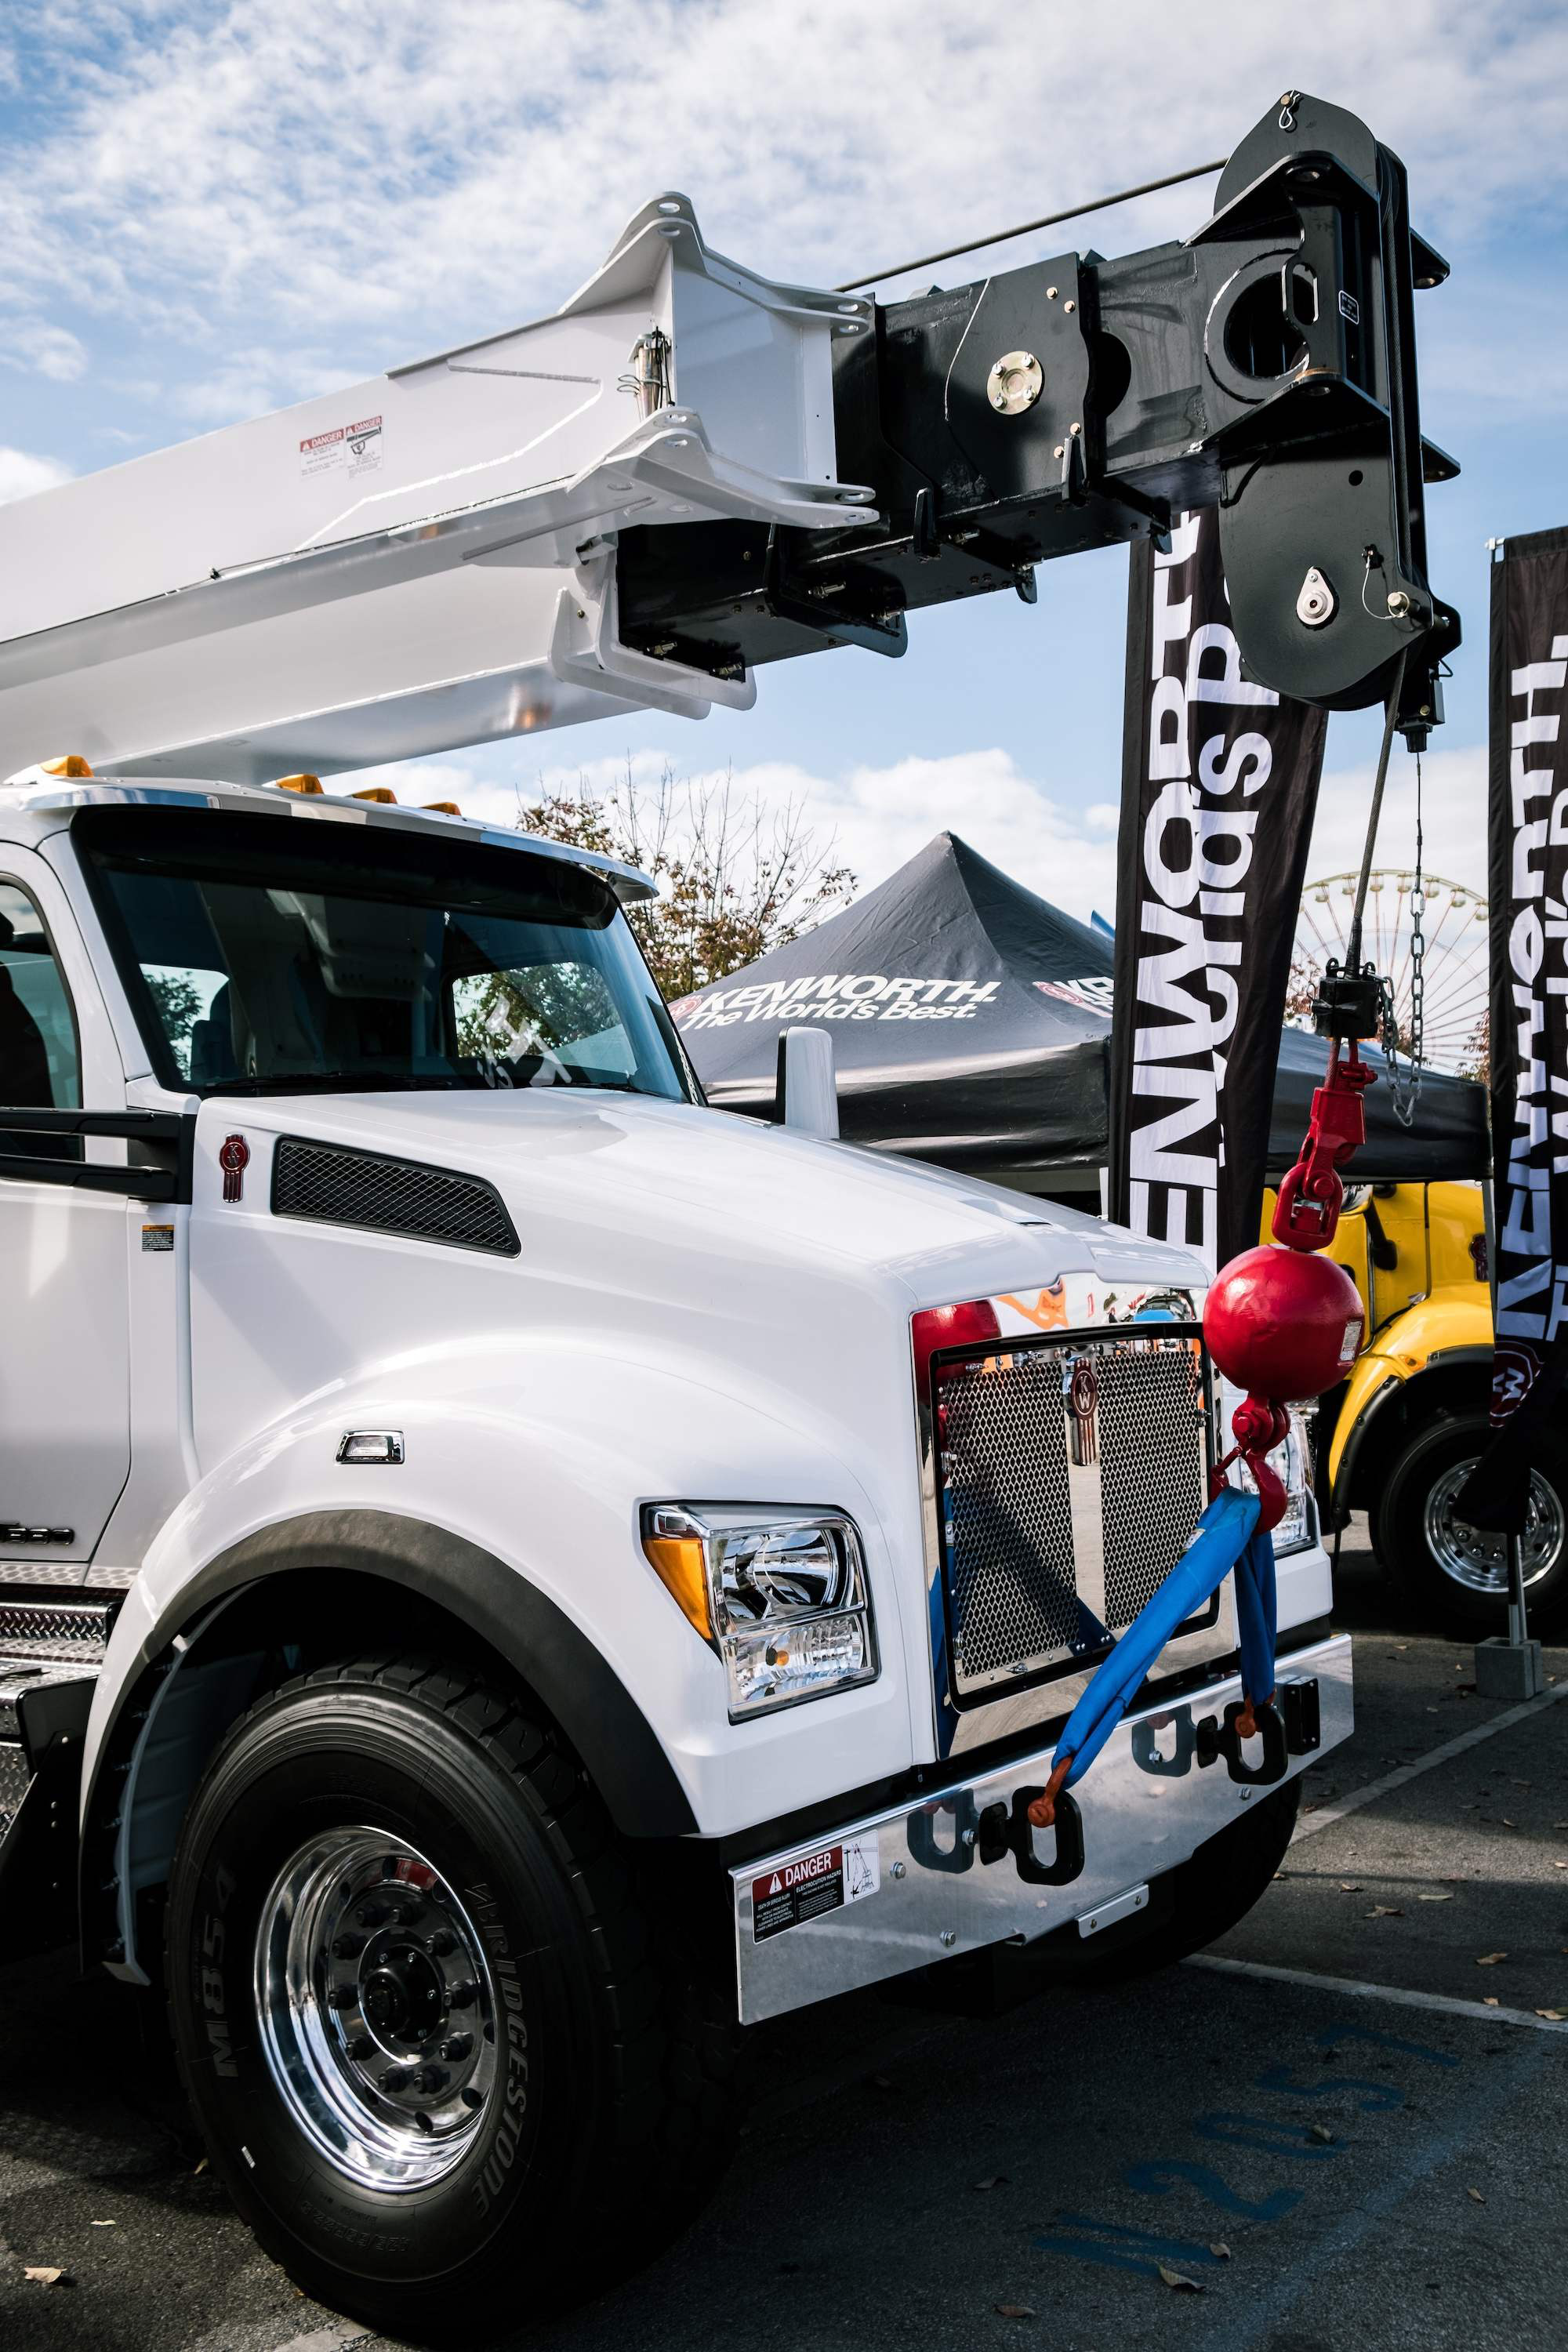 PHOTOS: The pickups and work trucks of ICUEE 2017